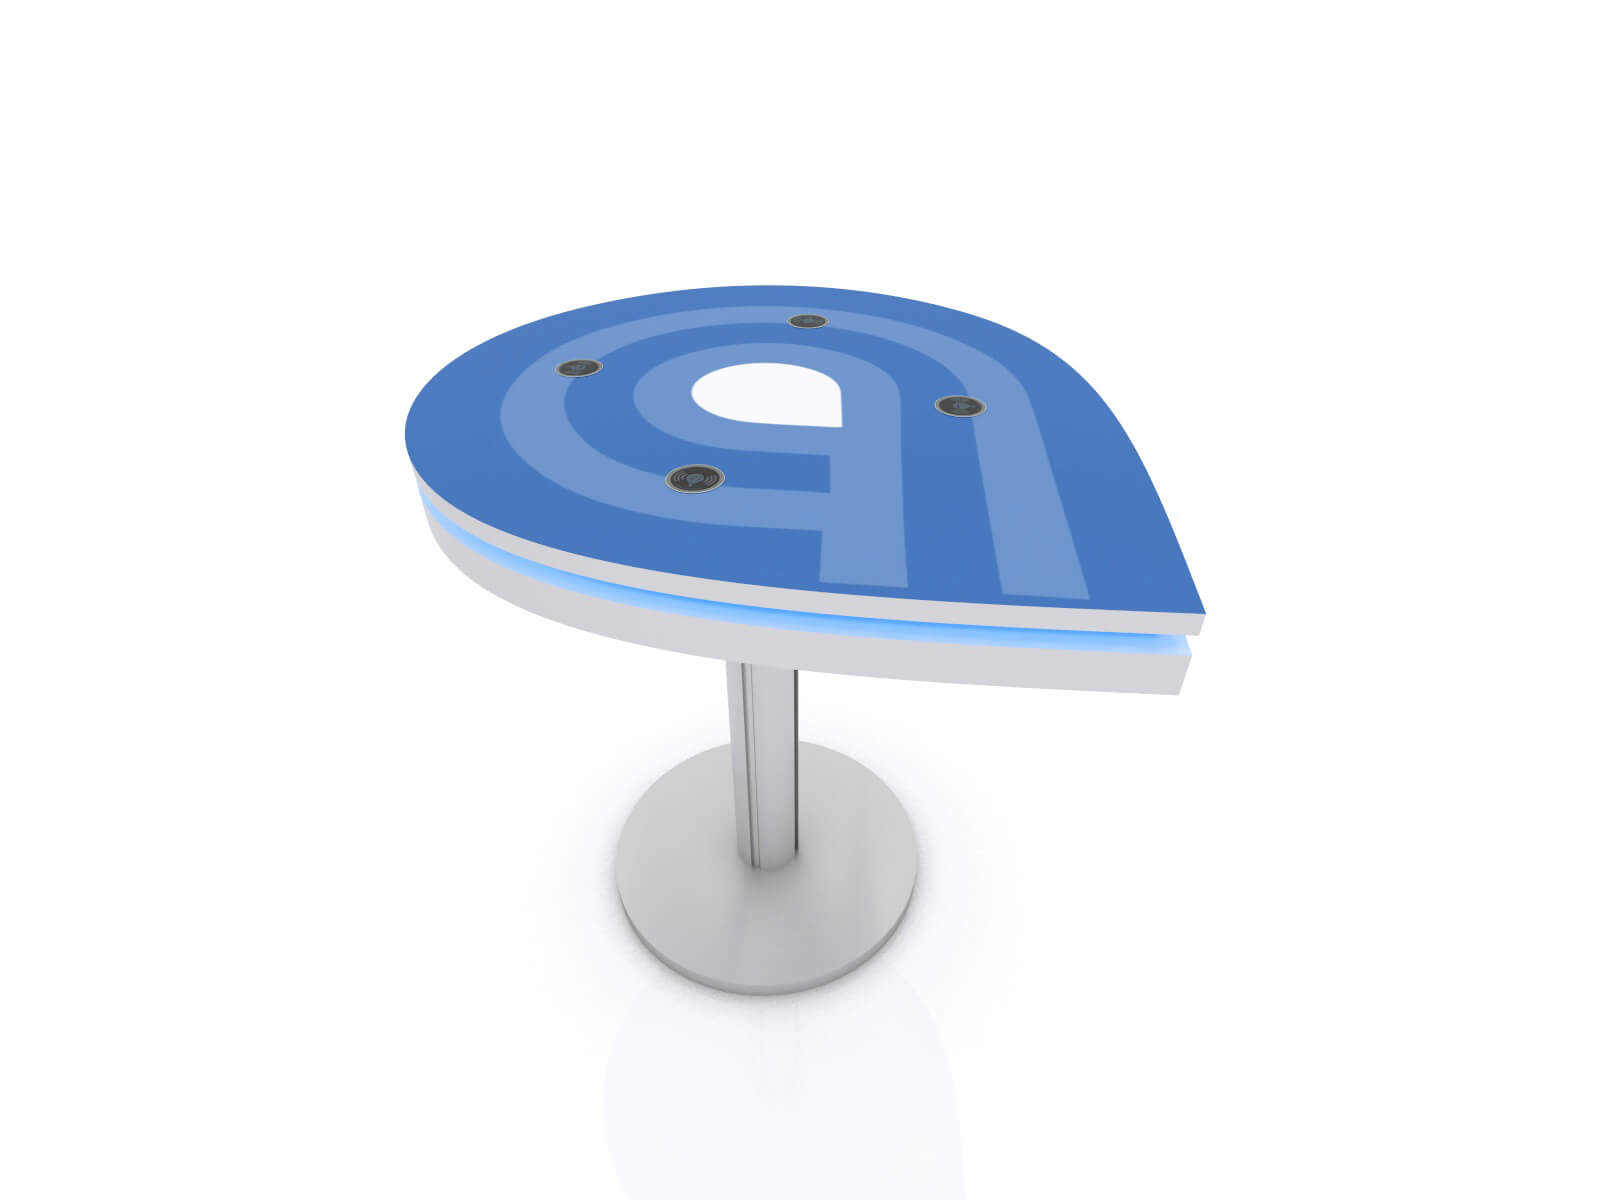 MOD-1457 Trade Show Wireless Charging Station - Image 2